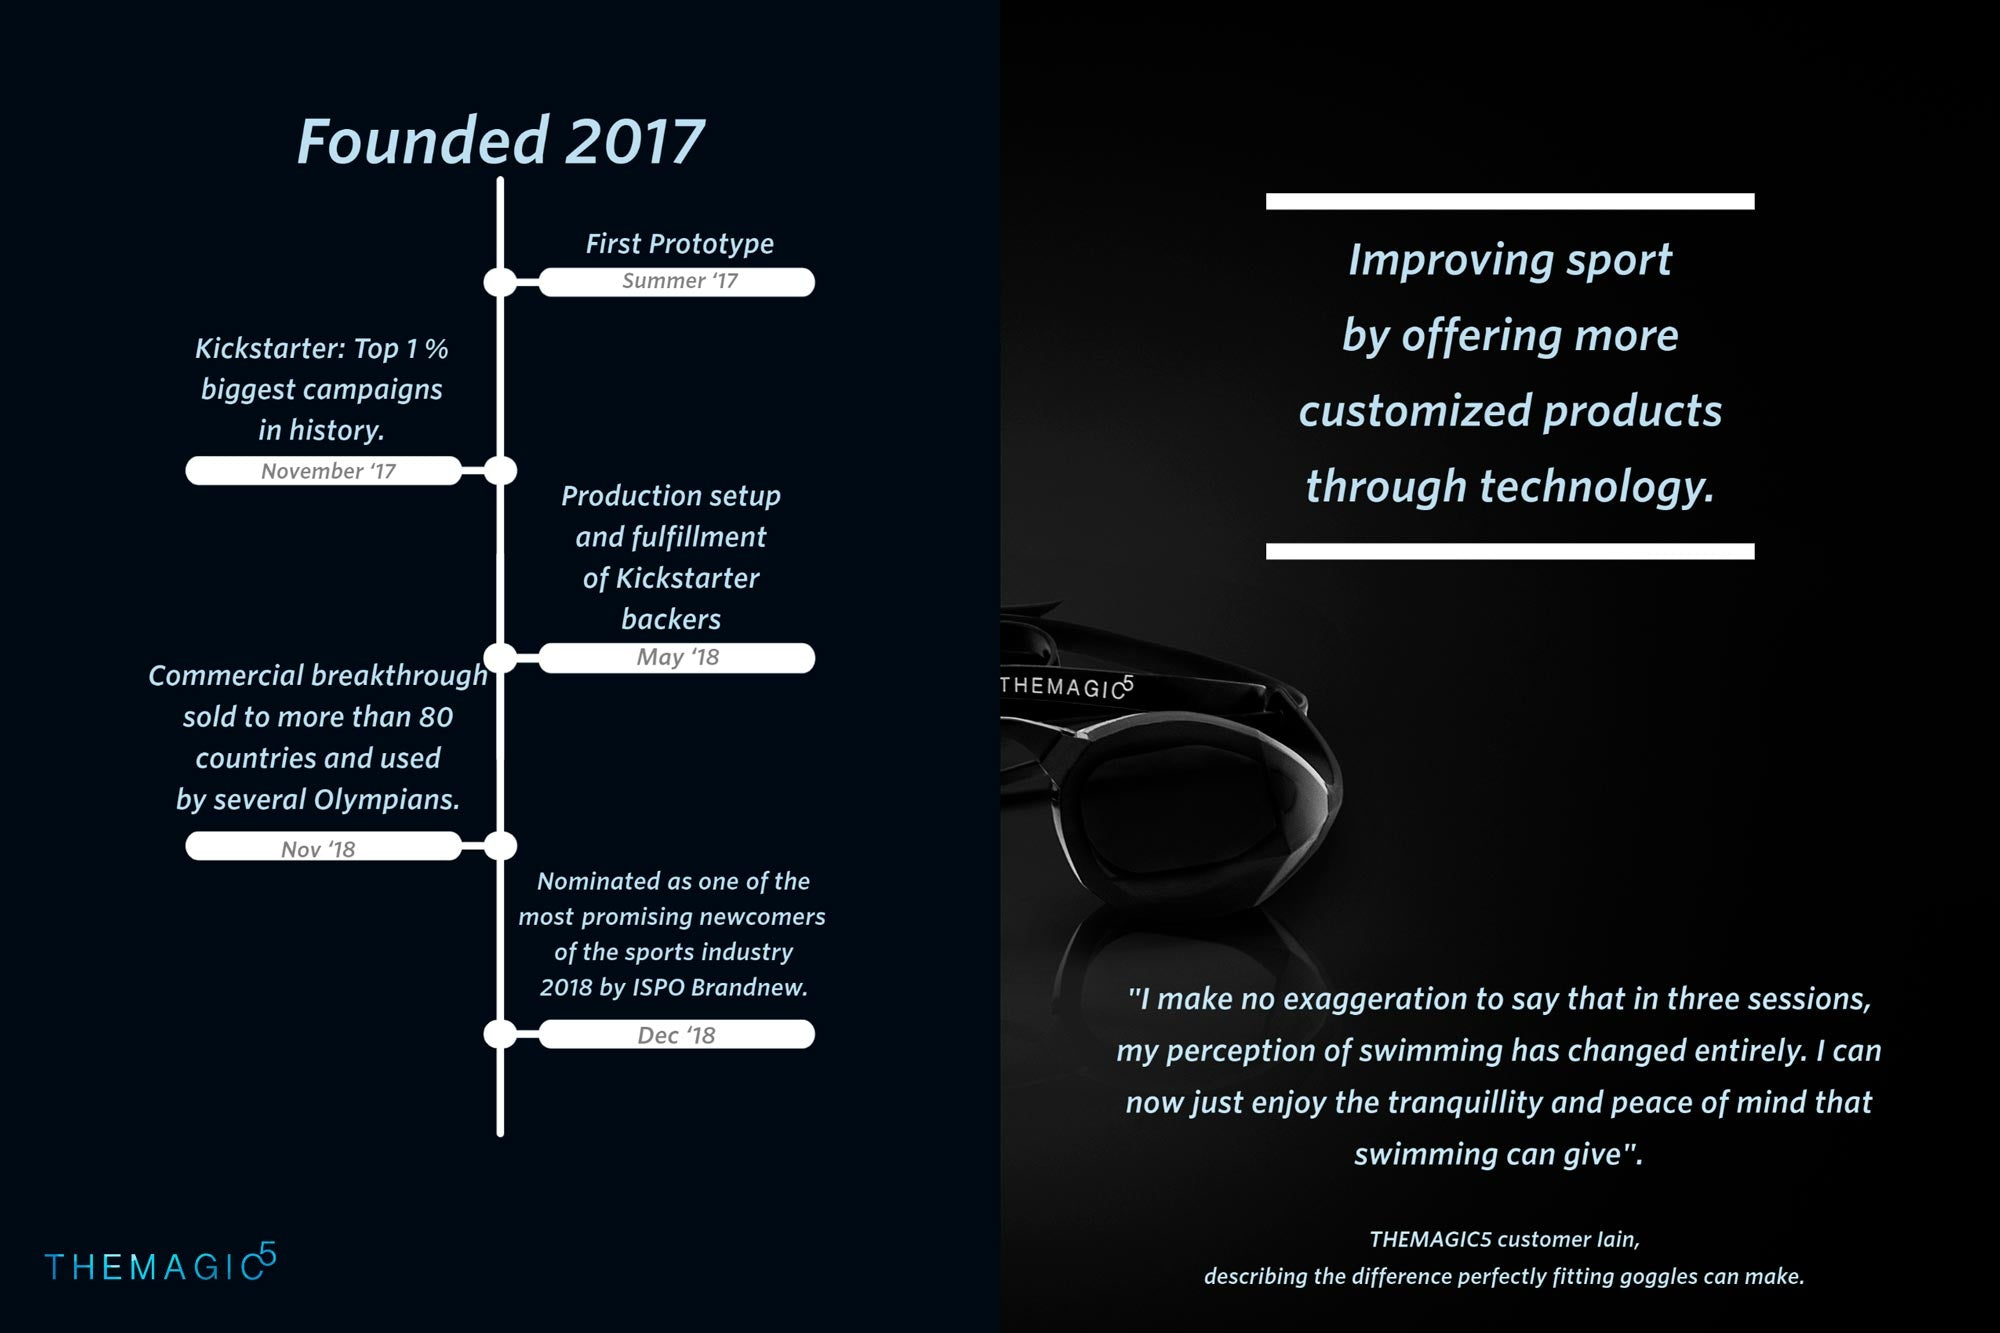 Founded in 2017. First prototype developed in the summer of 2017. We reached the top 1% of Kickstarter campaigns in the history of Kickstarter in November of 2017. Production setup and fulfillment began for all backers in May of 2018. Commercial breakthrough: Sold to more than 90 countries, and was endorsed by several Olympians in November of 2018. Nominated as one of the most promising newcomers of the sports industry 2018 by ISPO Brandnew in December 2018.